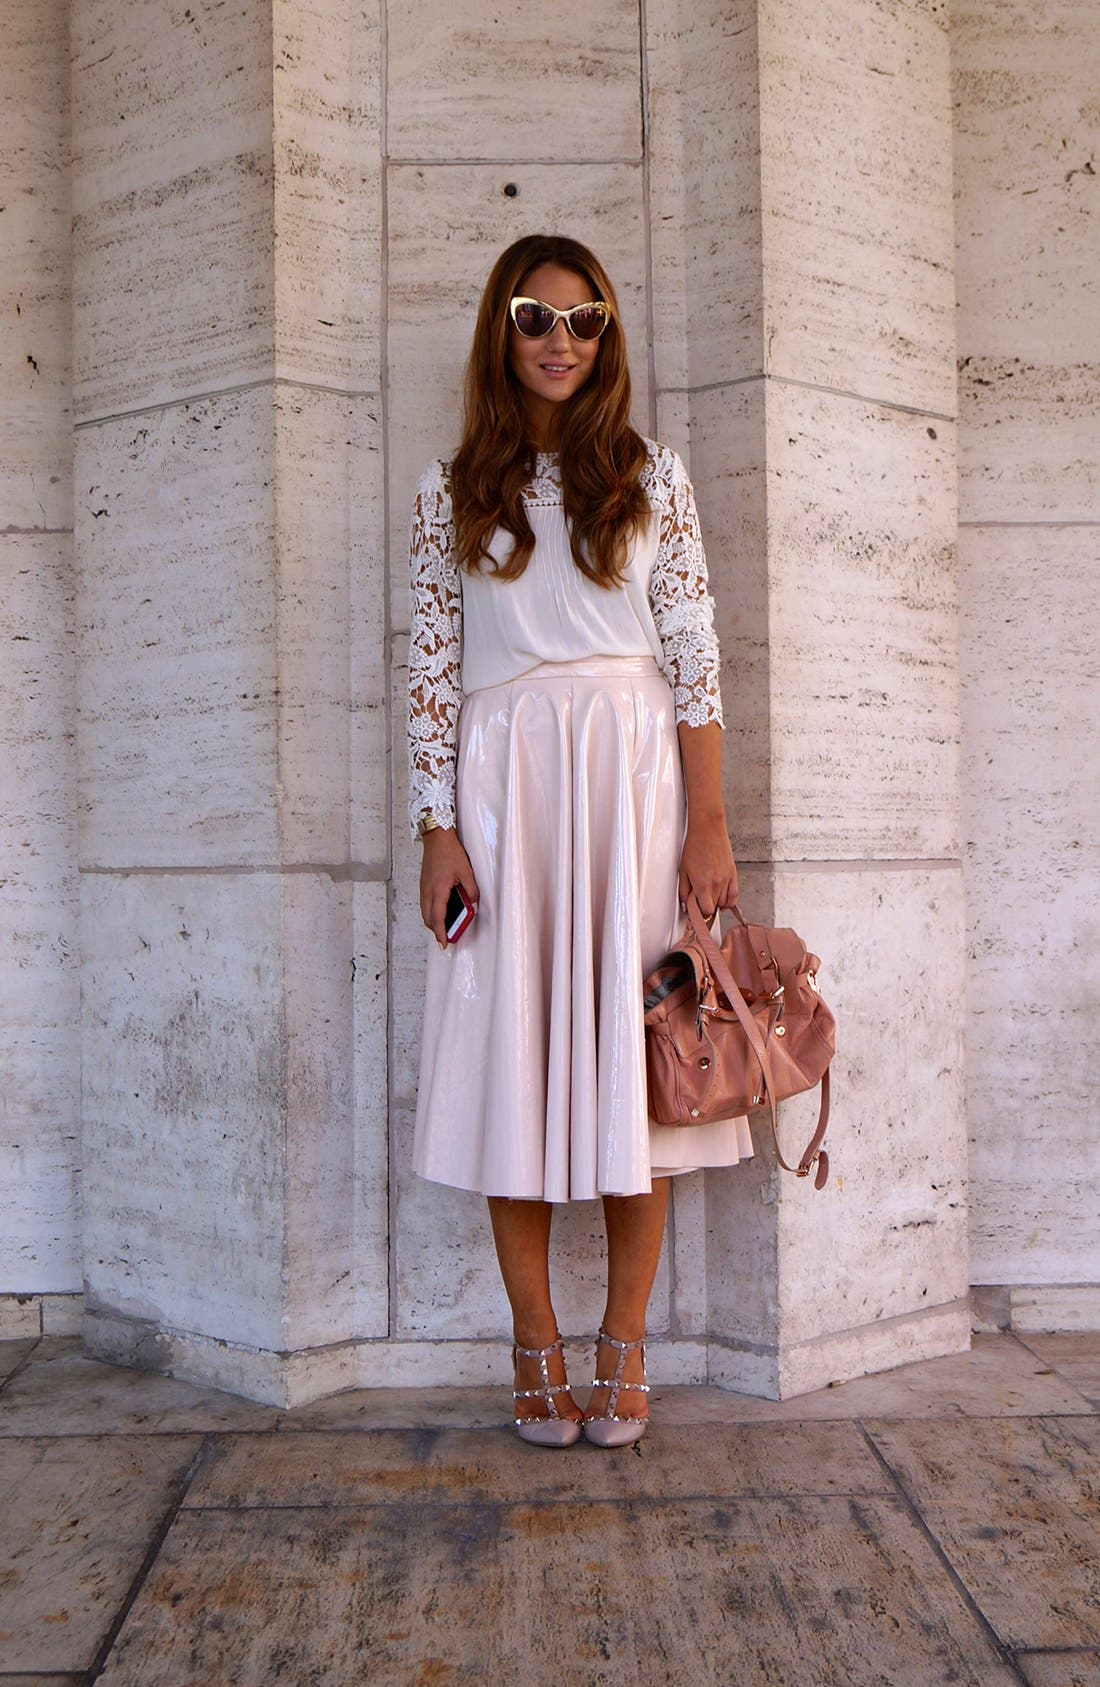 Main Image - Anytime Lace Street Style Look